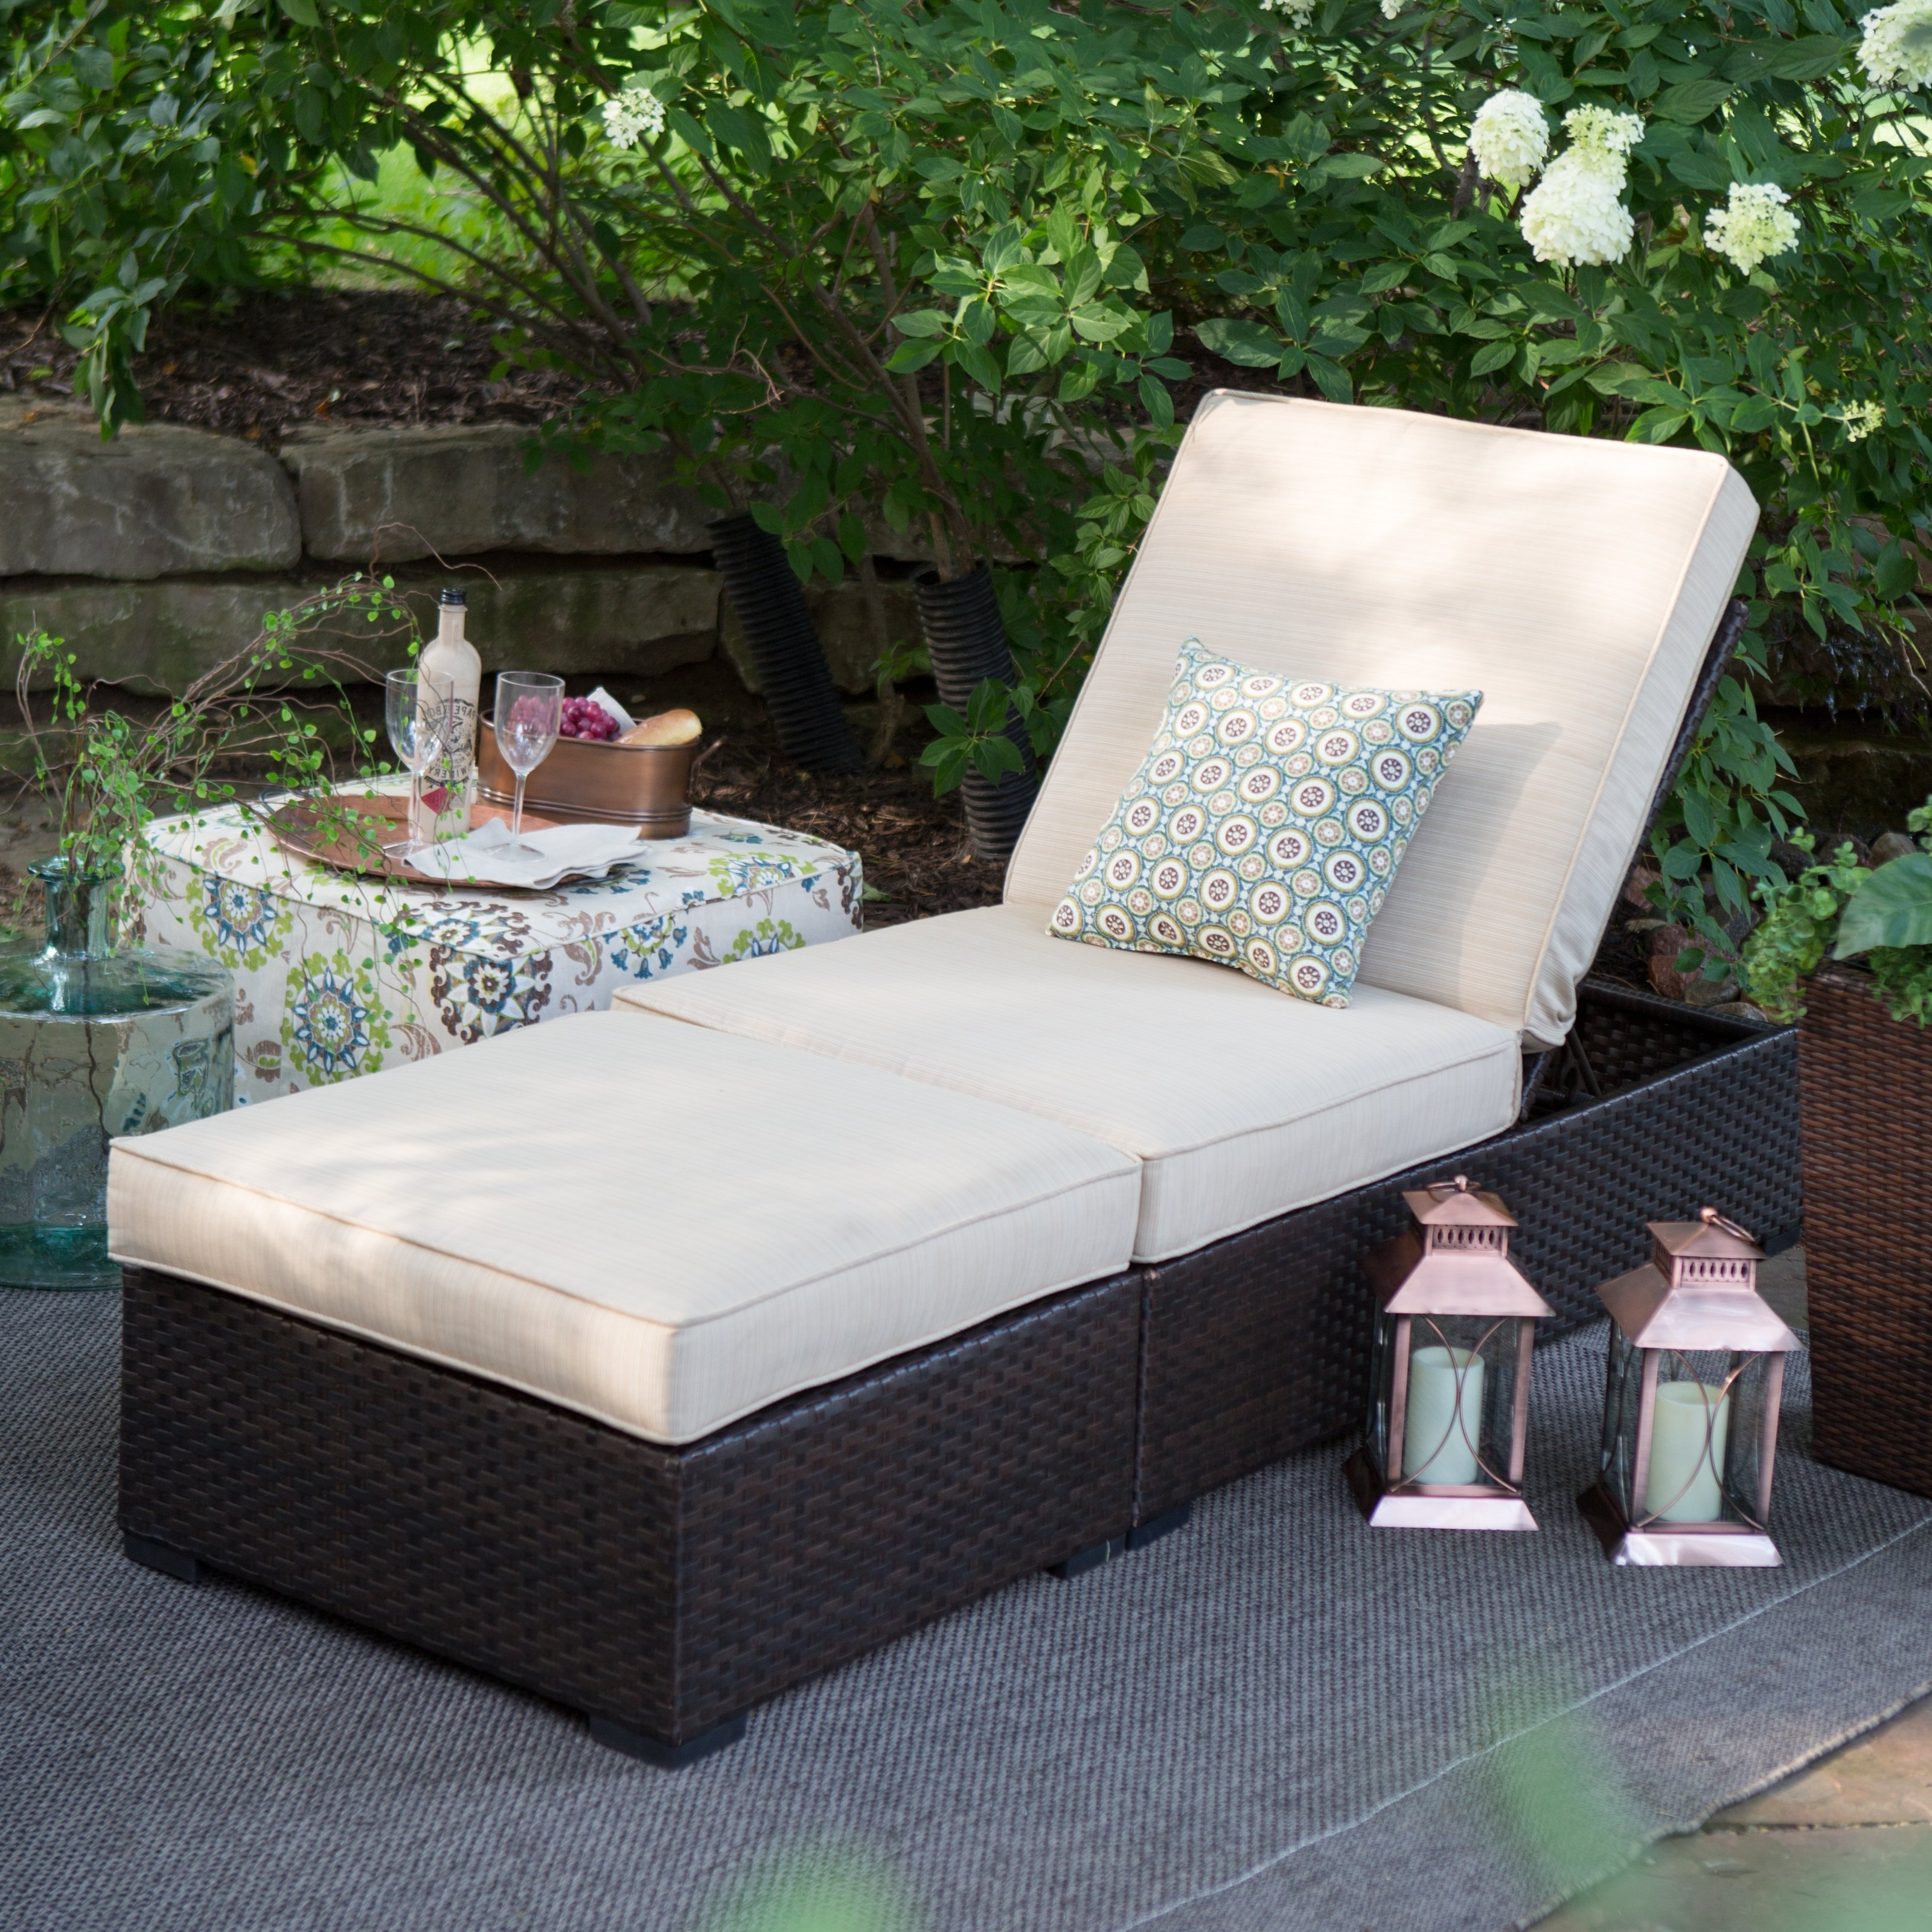 Recent Belham Living Marcella Wide Wicker Chaise Lounge With Ottoman Inside Wicker Outdoor Chaise Lounges (View 8 of 15)